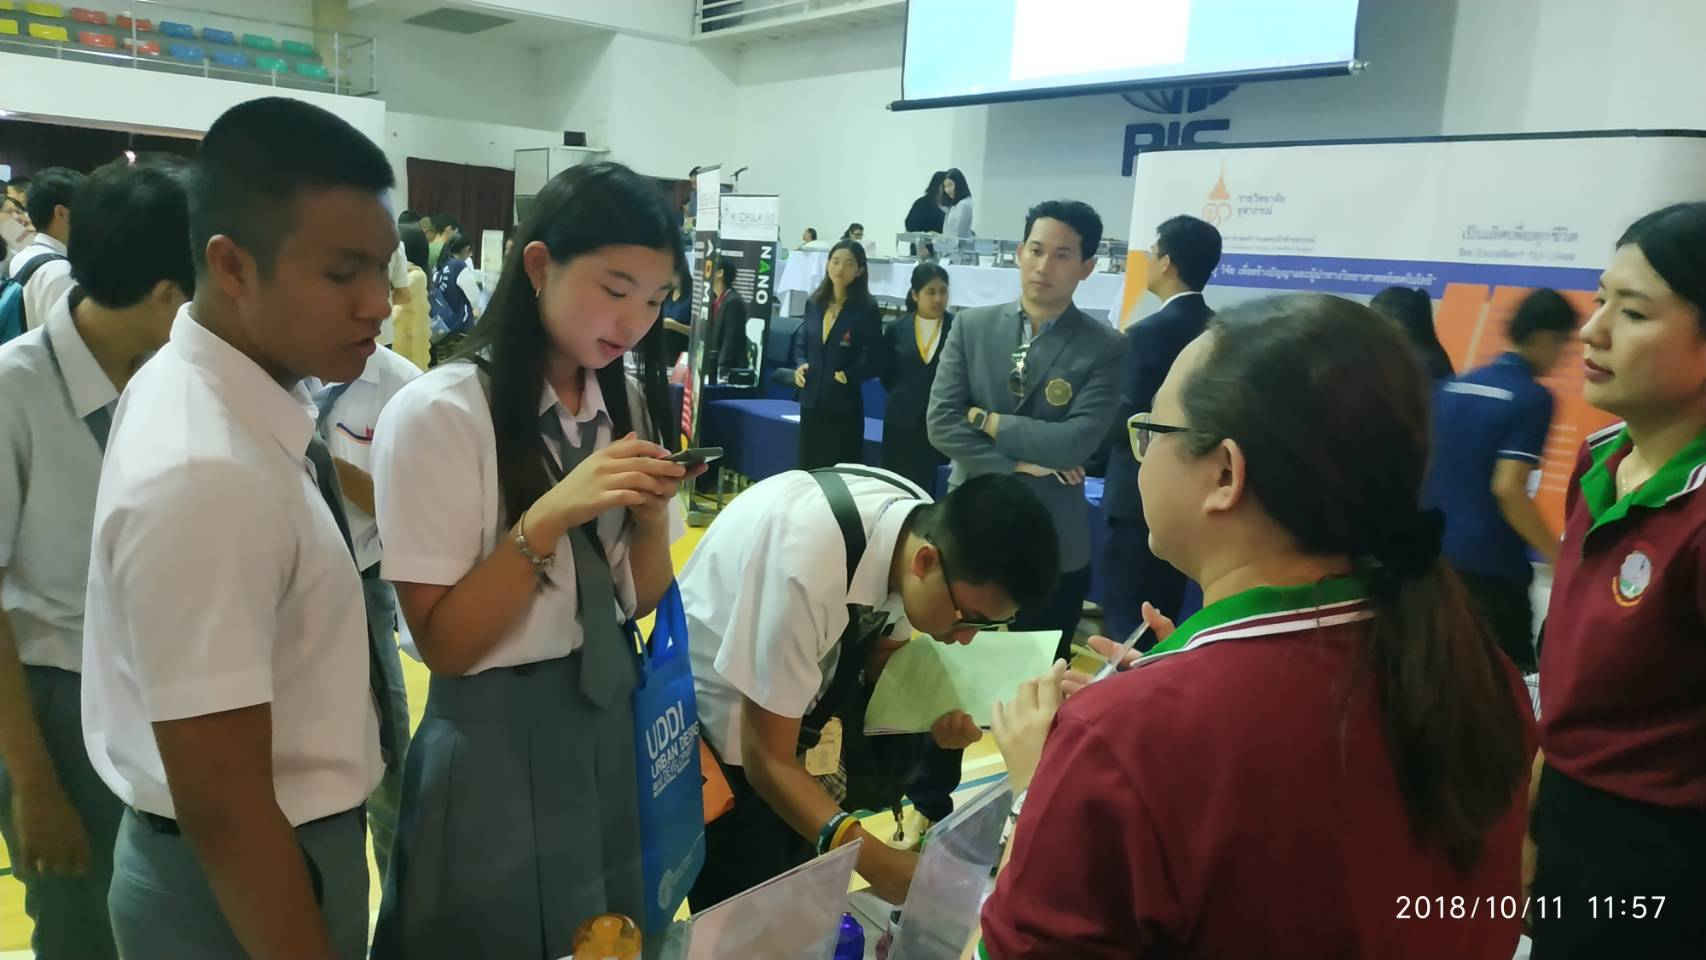 Thai College Fair 2018 11/10/18